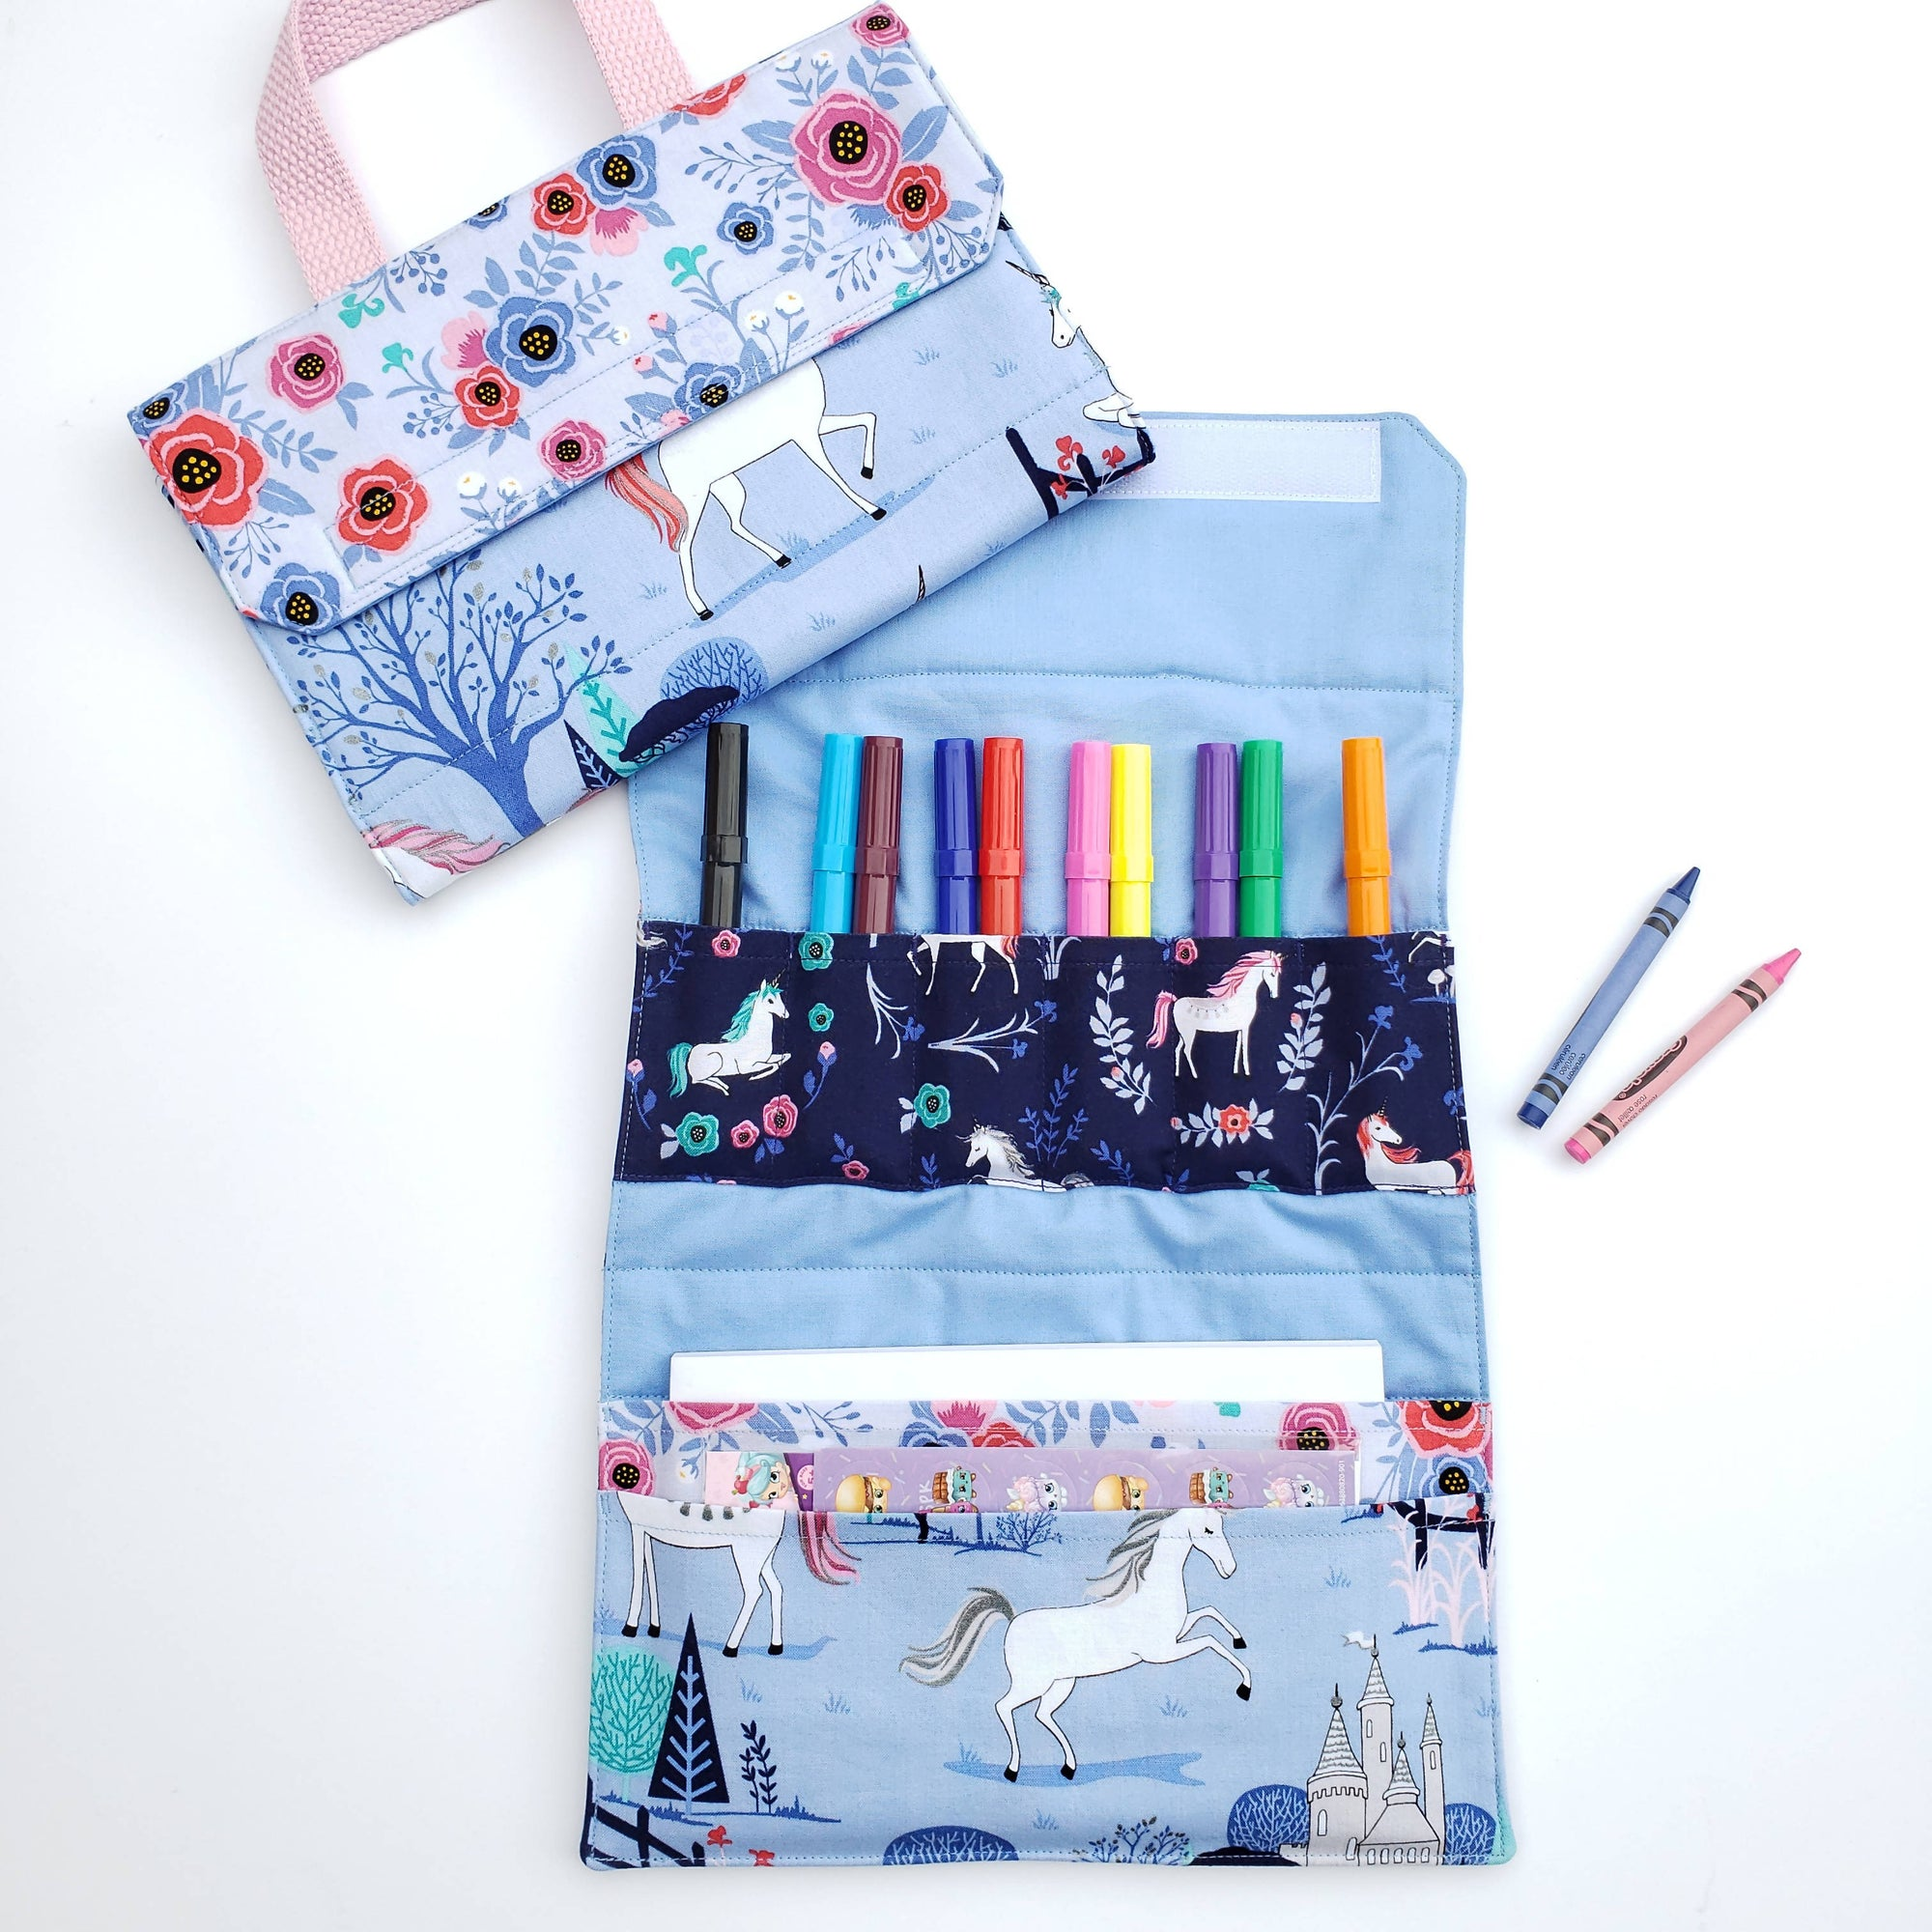 Craft Tote - Unicorns